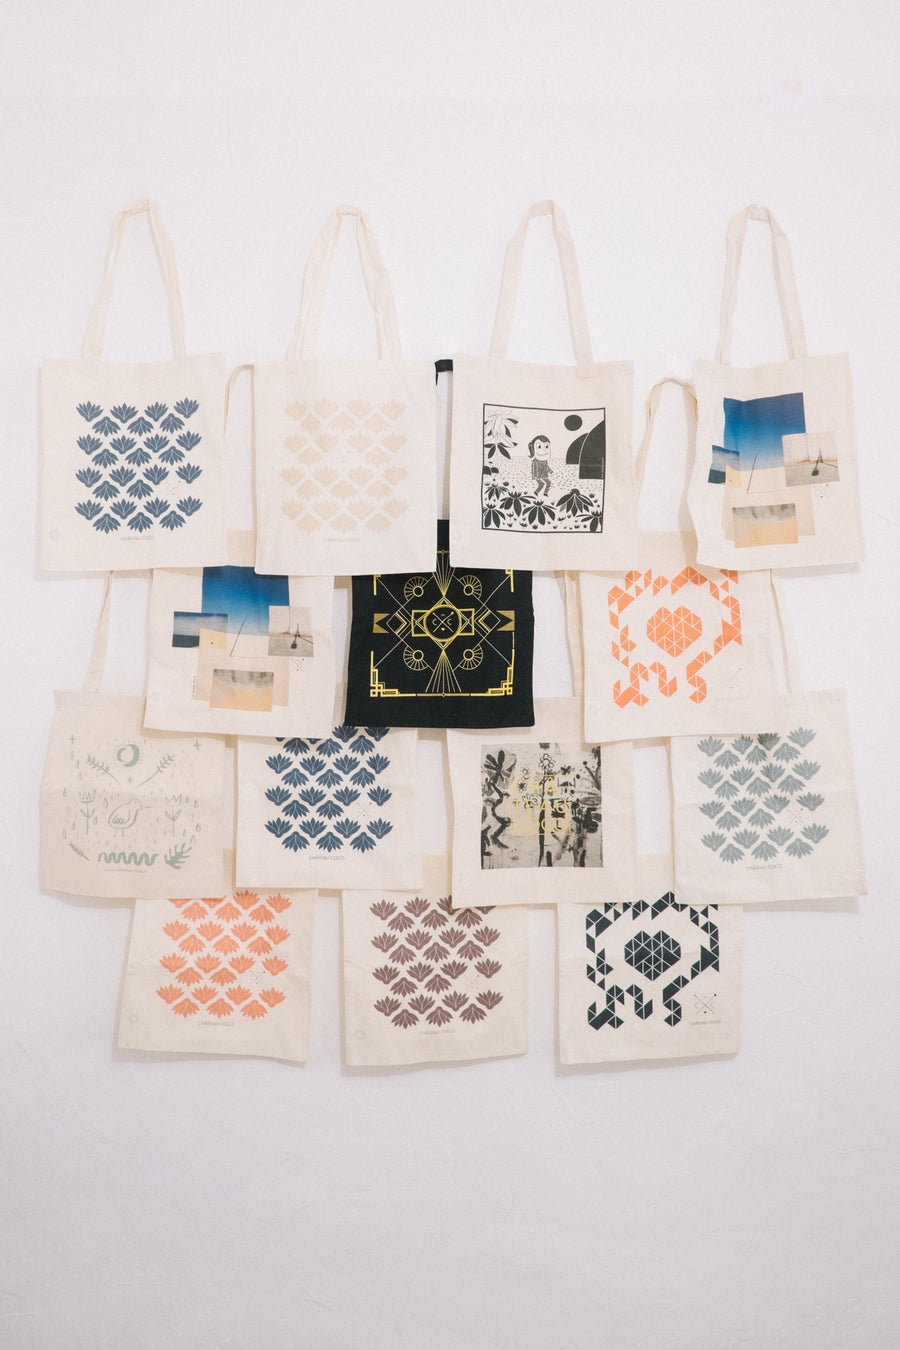 Image of Limited edition Totebags